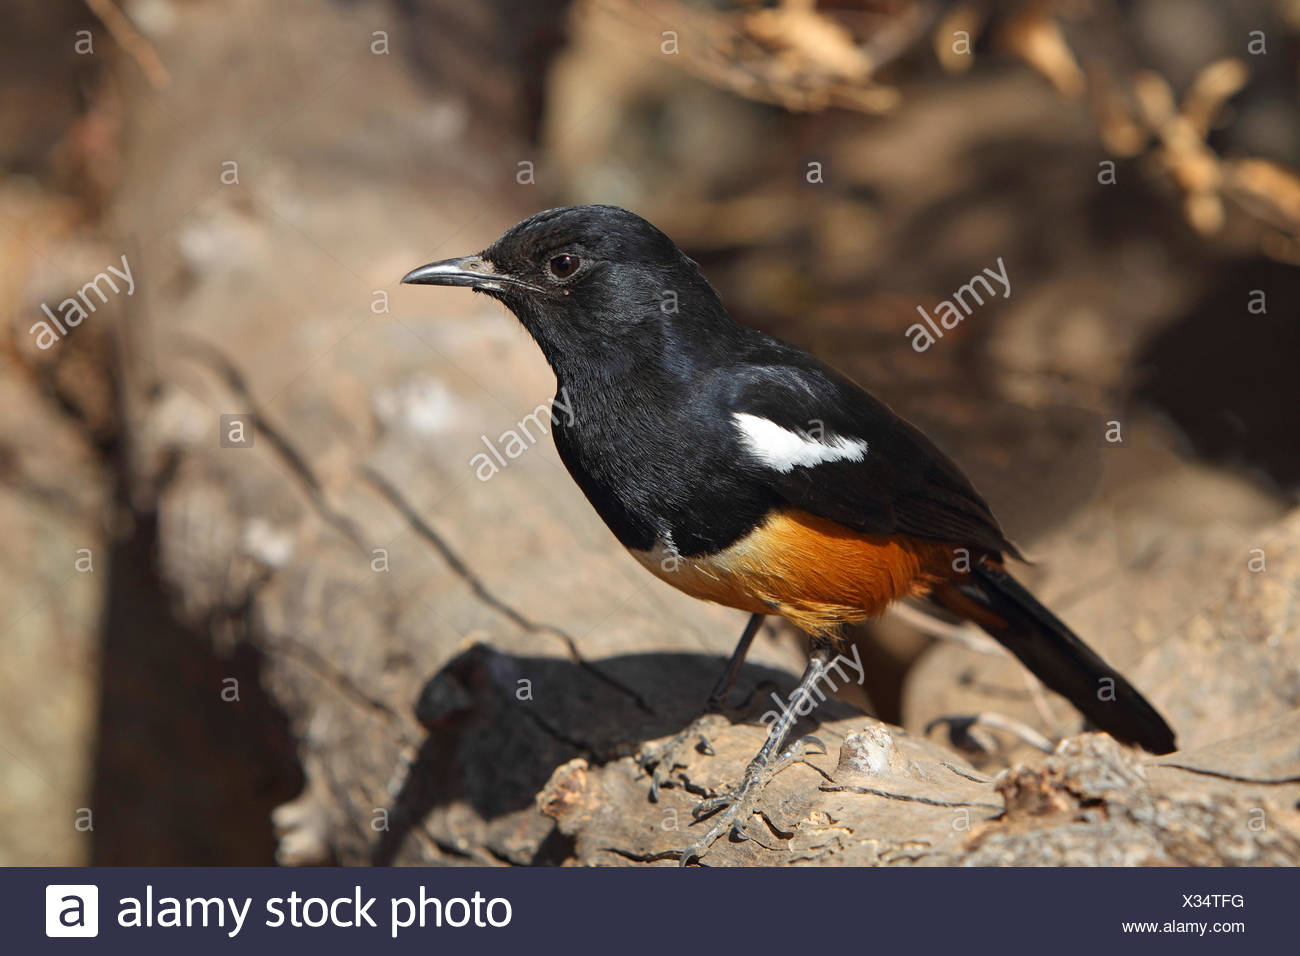 mocking cliffchat (Myrmecocichla cinnamomeiventris), male sits on a stem, South Africa, Pilanesberg National Park - Stock Image